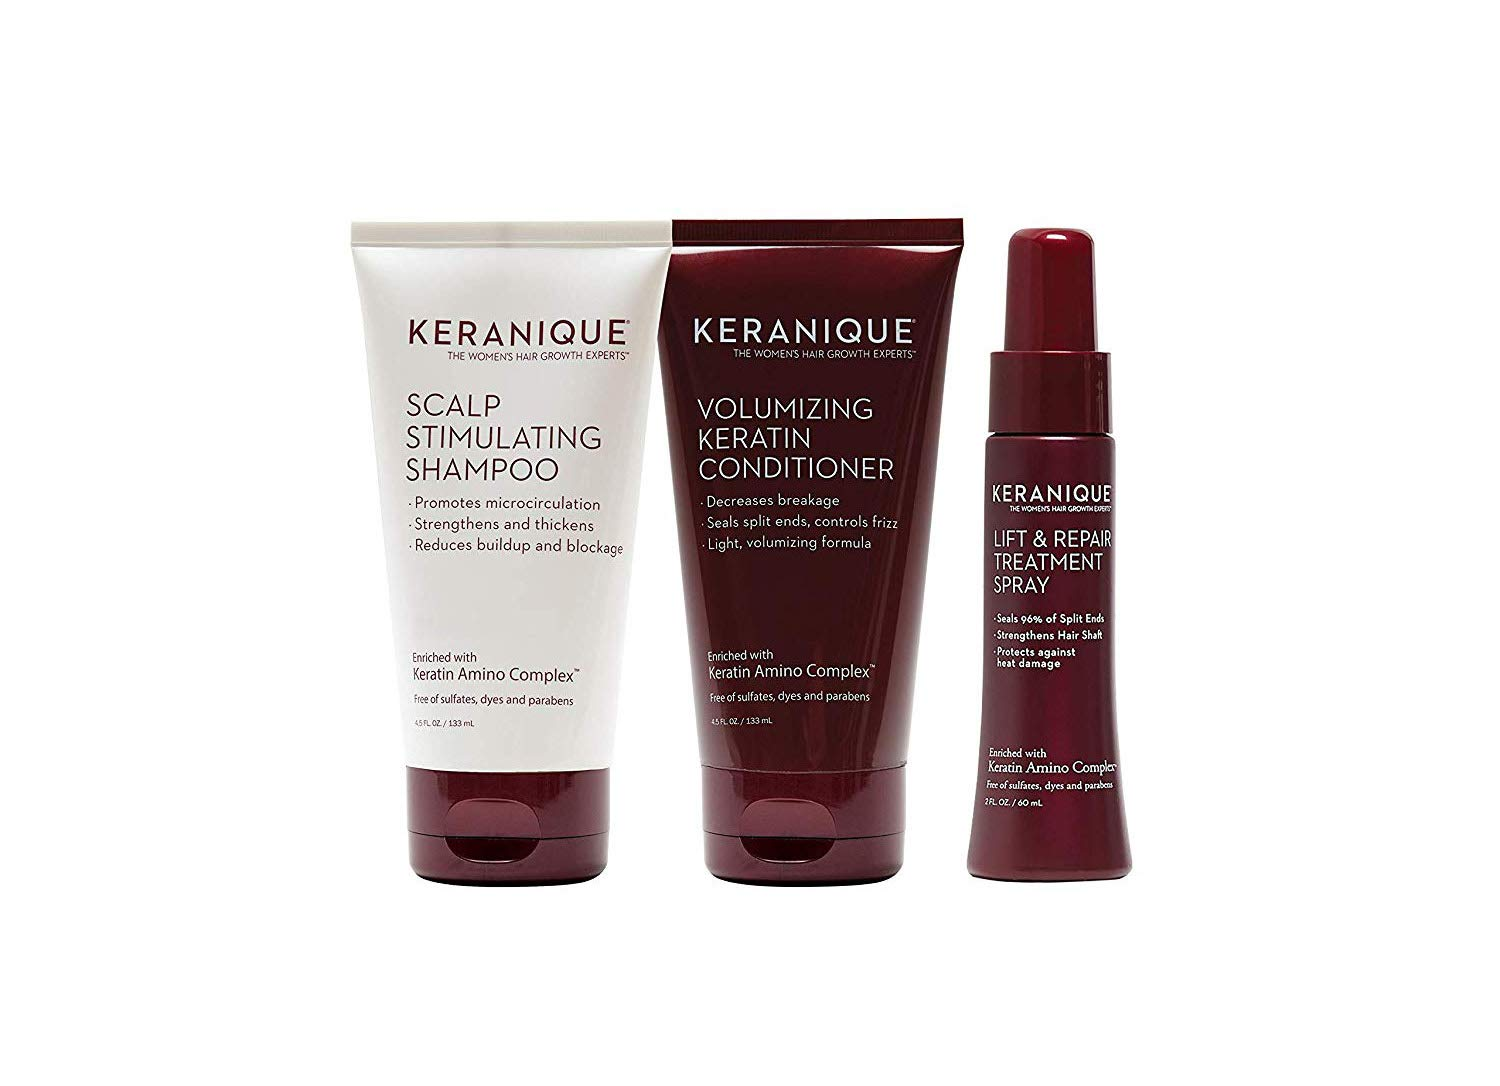 Keranique 30 Day Lift & Repair Kit   Shampoo, Conditioner, and Lift & Repair Treatment Spray   Keratin Amino Complex   Seals Split Ends   Free of Sulfates, Dyes and Parabens by Keranique